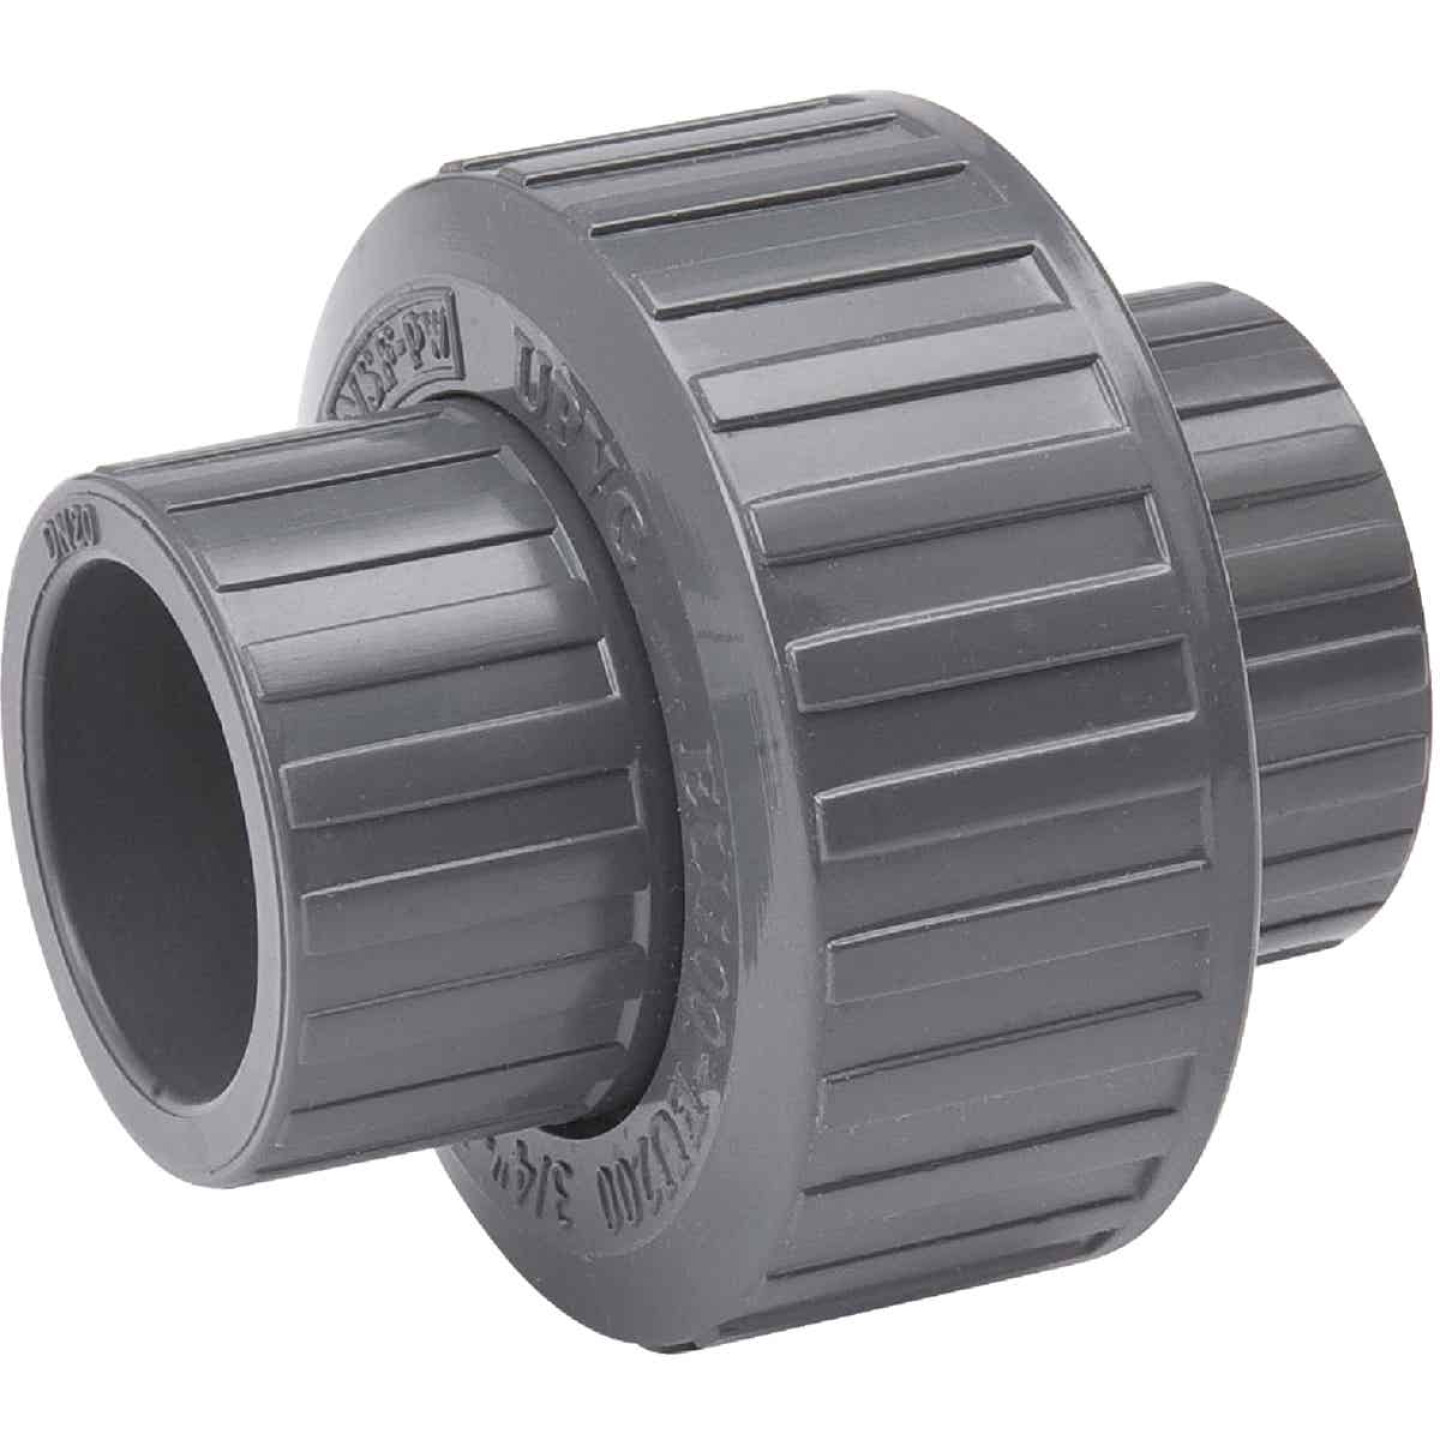 B&K 1/2 In. solvent Schedule 80 PVC Union Image 1